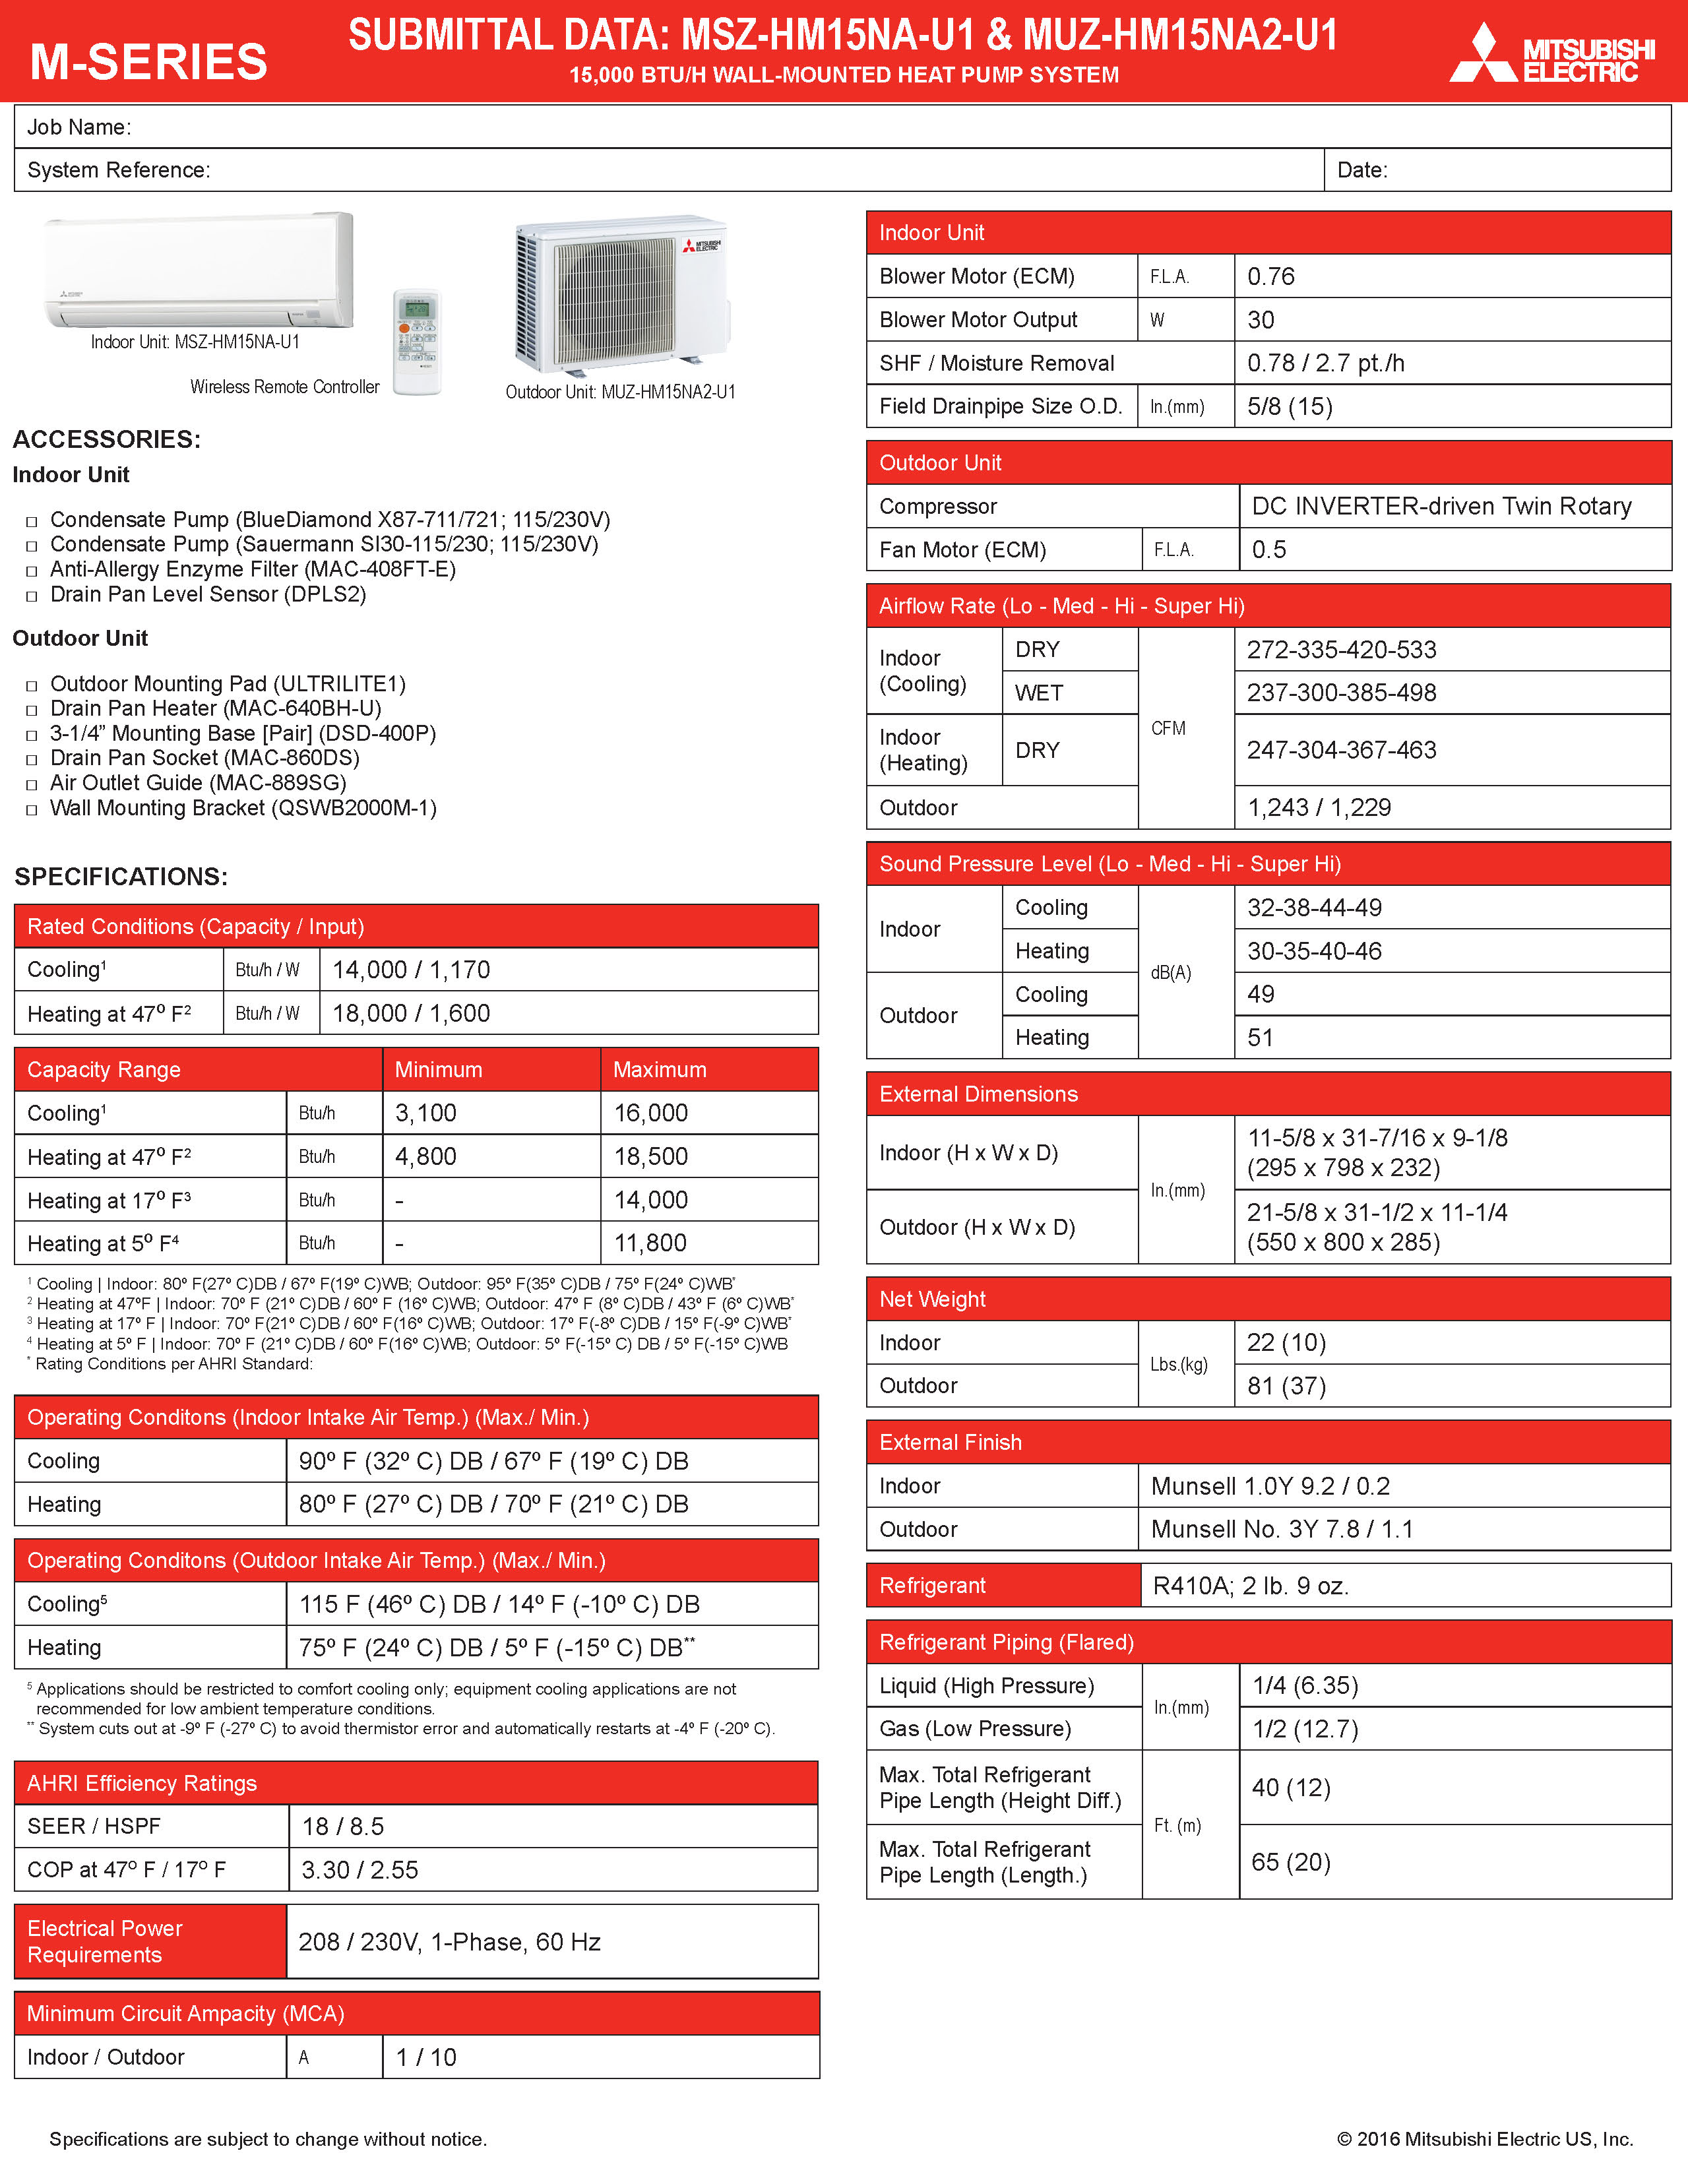 manual air mr prices mitsubishi central conditioning ductless units system hvac systems cost vrf slim